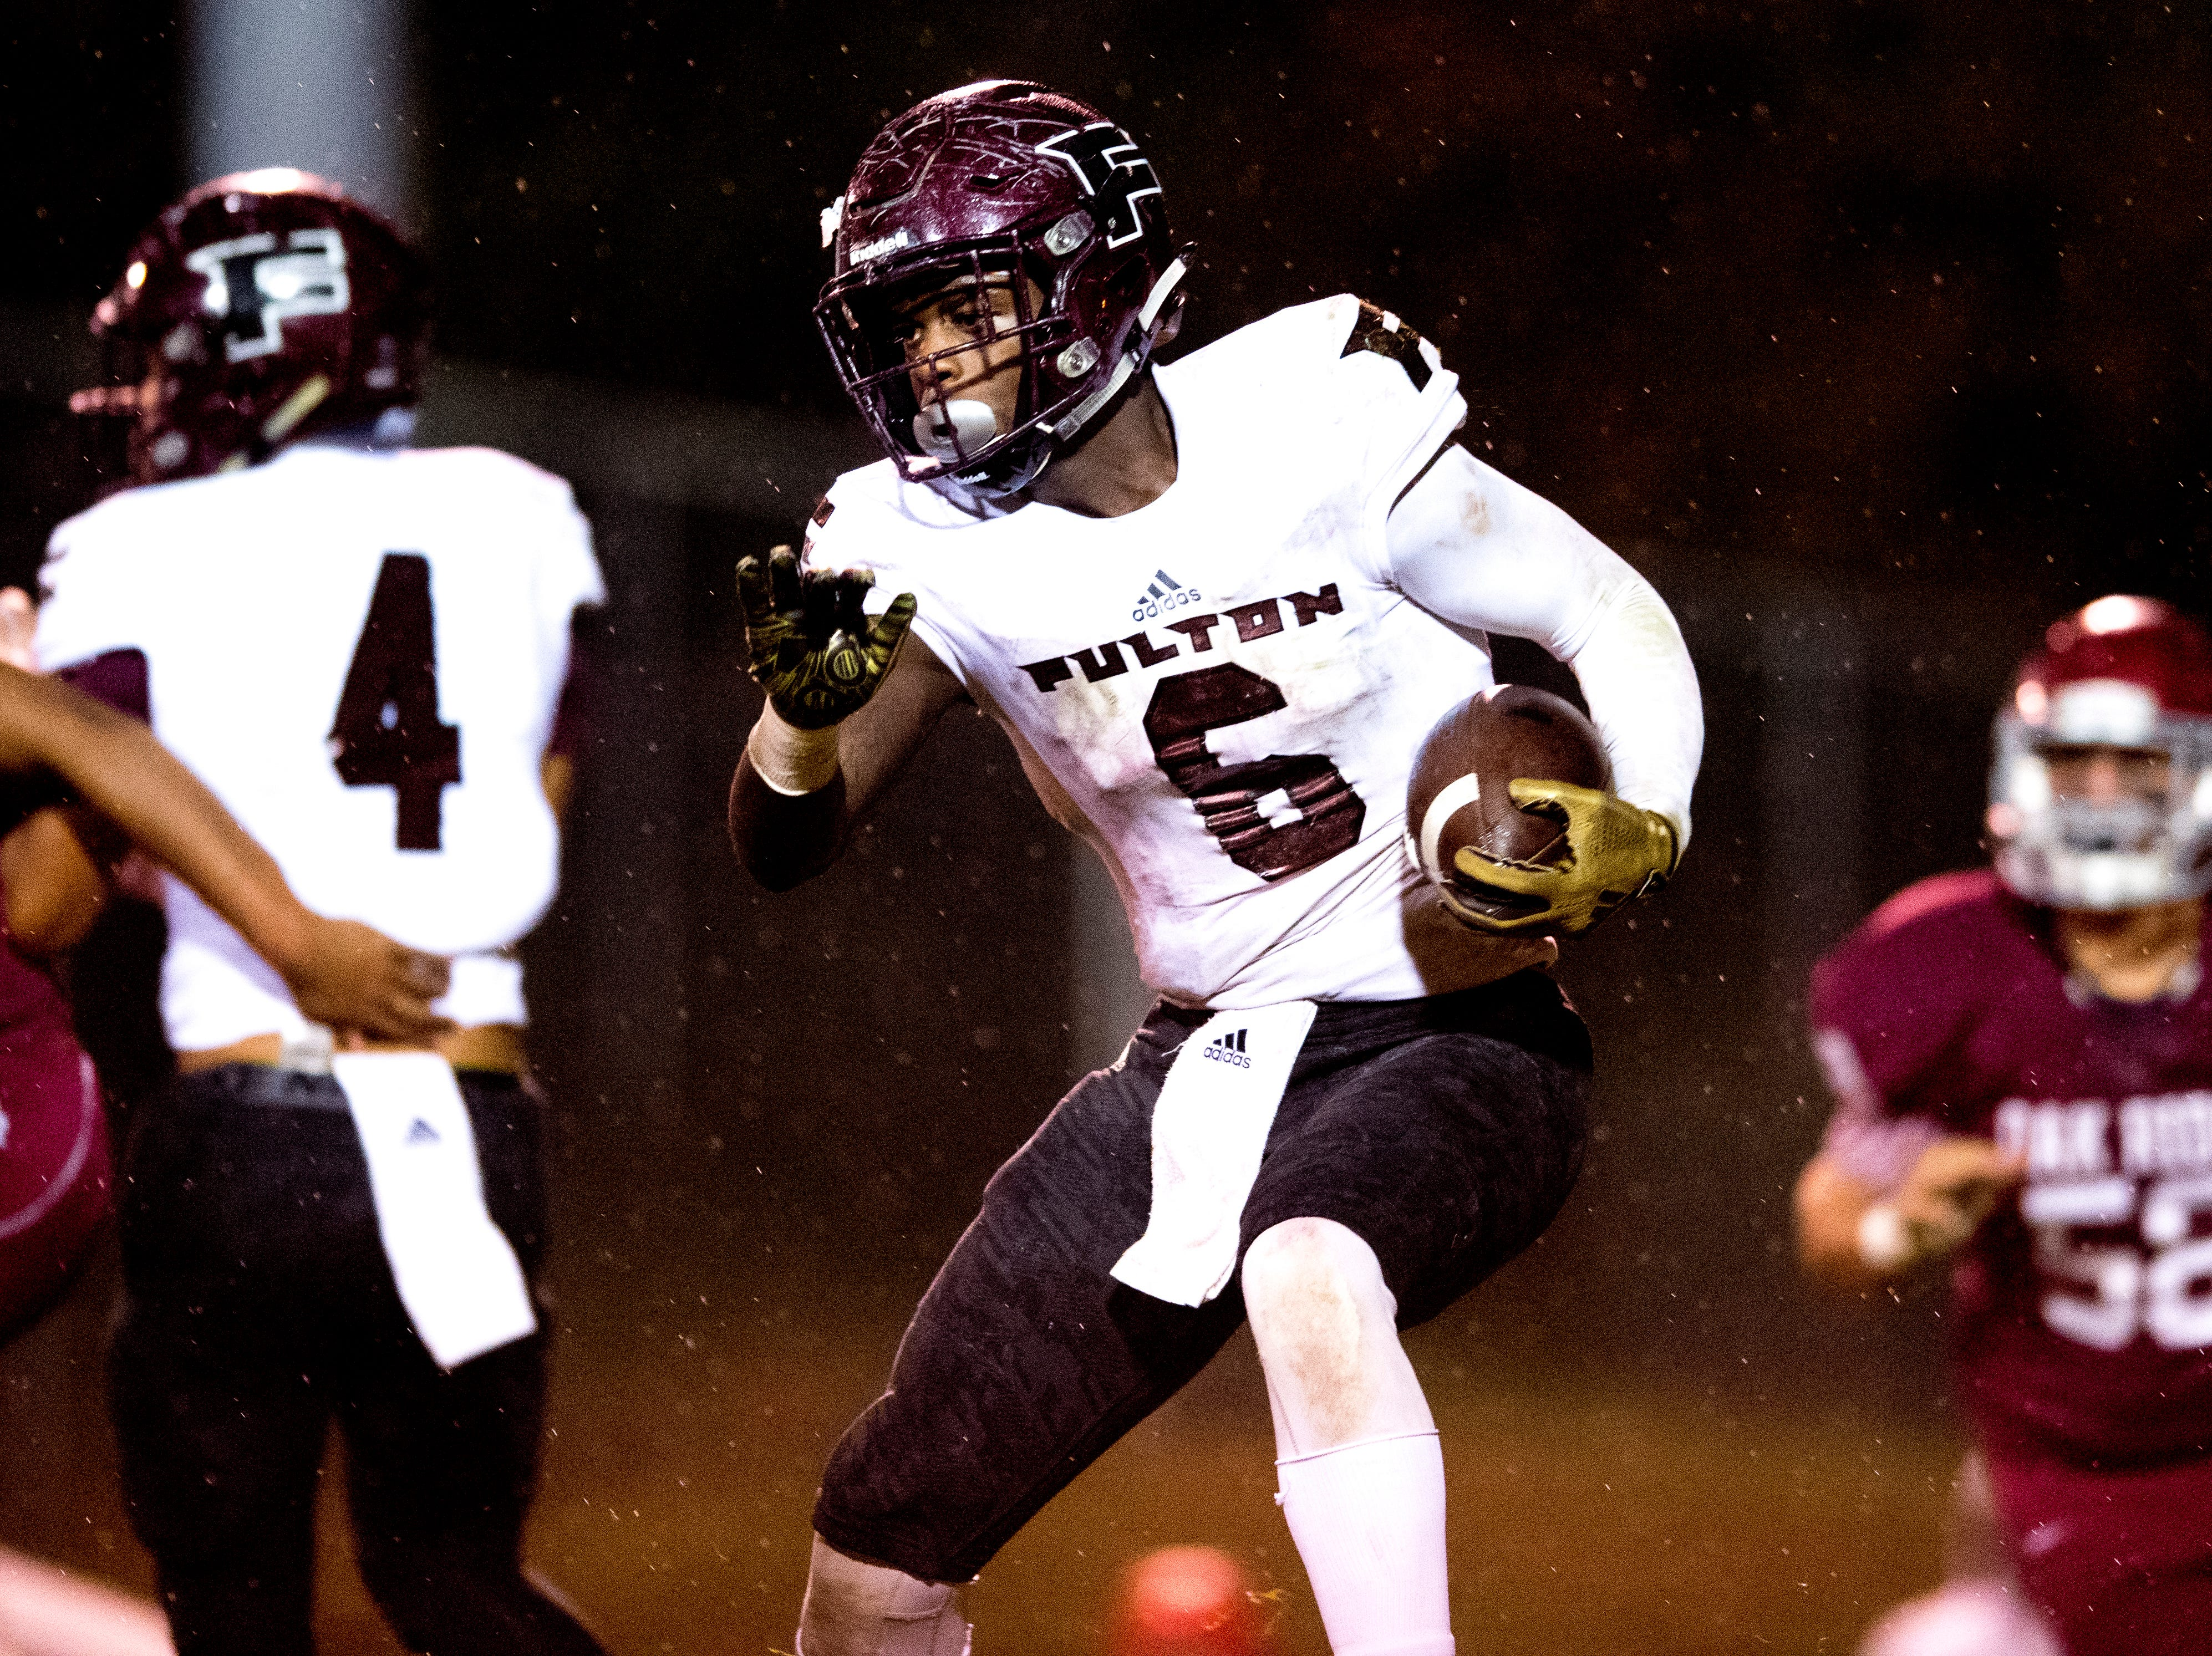 Fulton's DeShawn Page (6) runs with the ball through the rain during a football game between Oak Ridge and Fulton at Blankenship Field in Oak Ridge, Tennessee on Thursday, October 25, 2018.